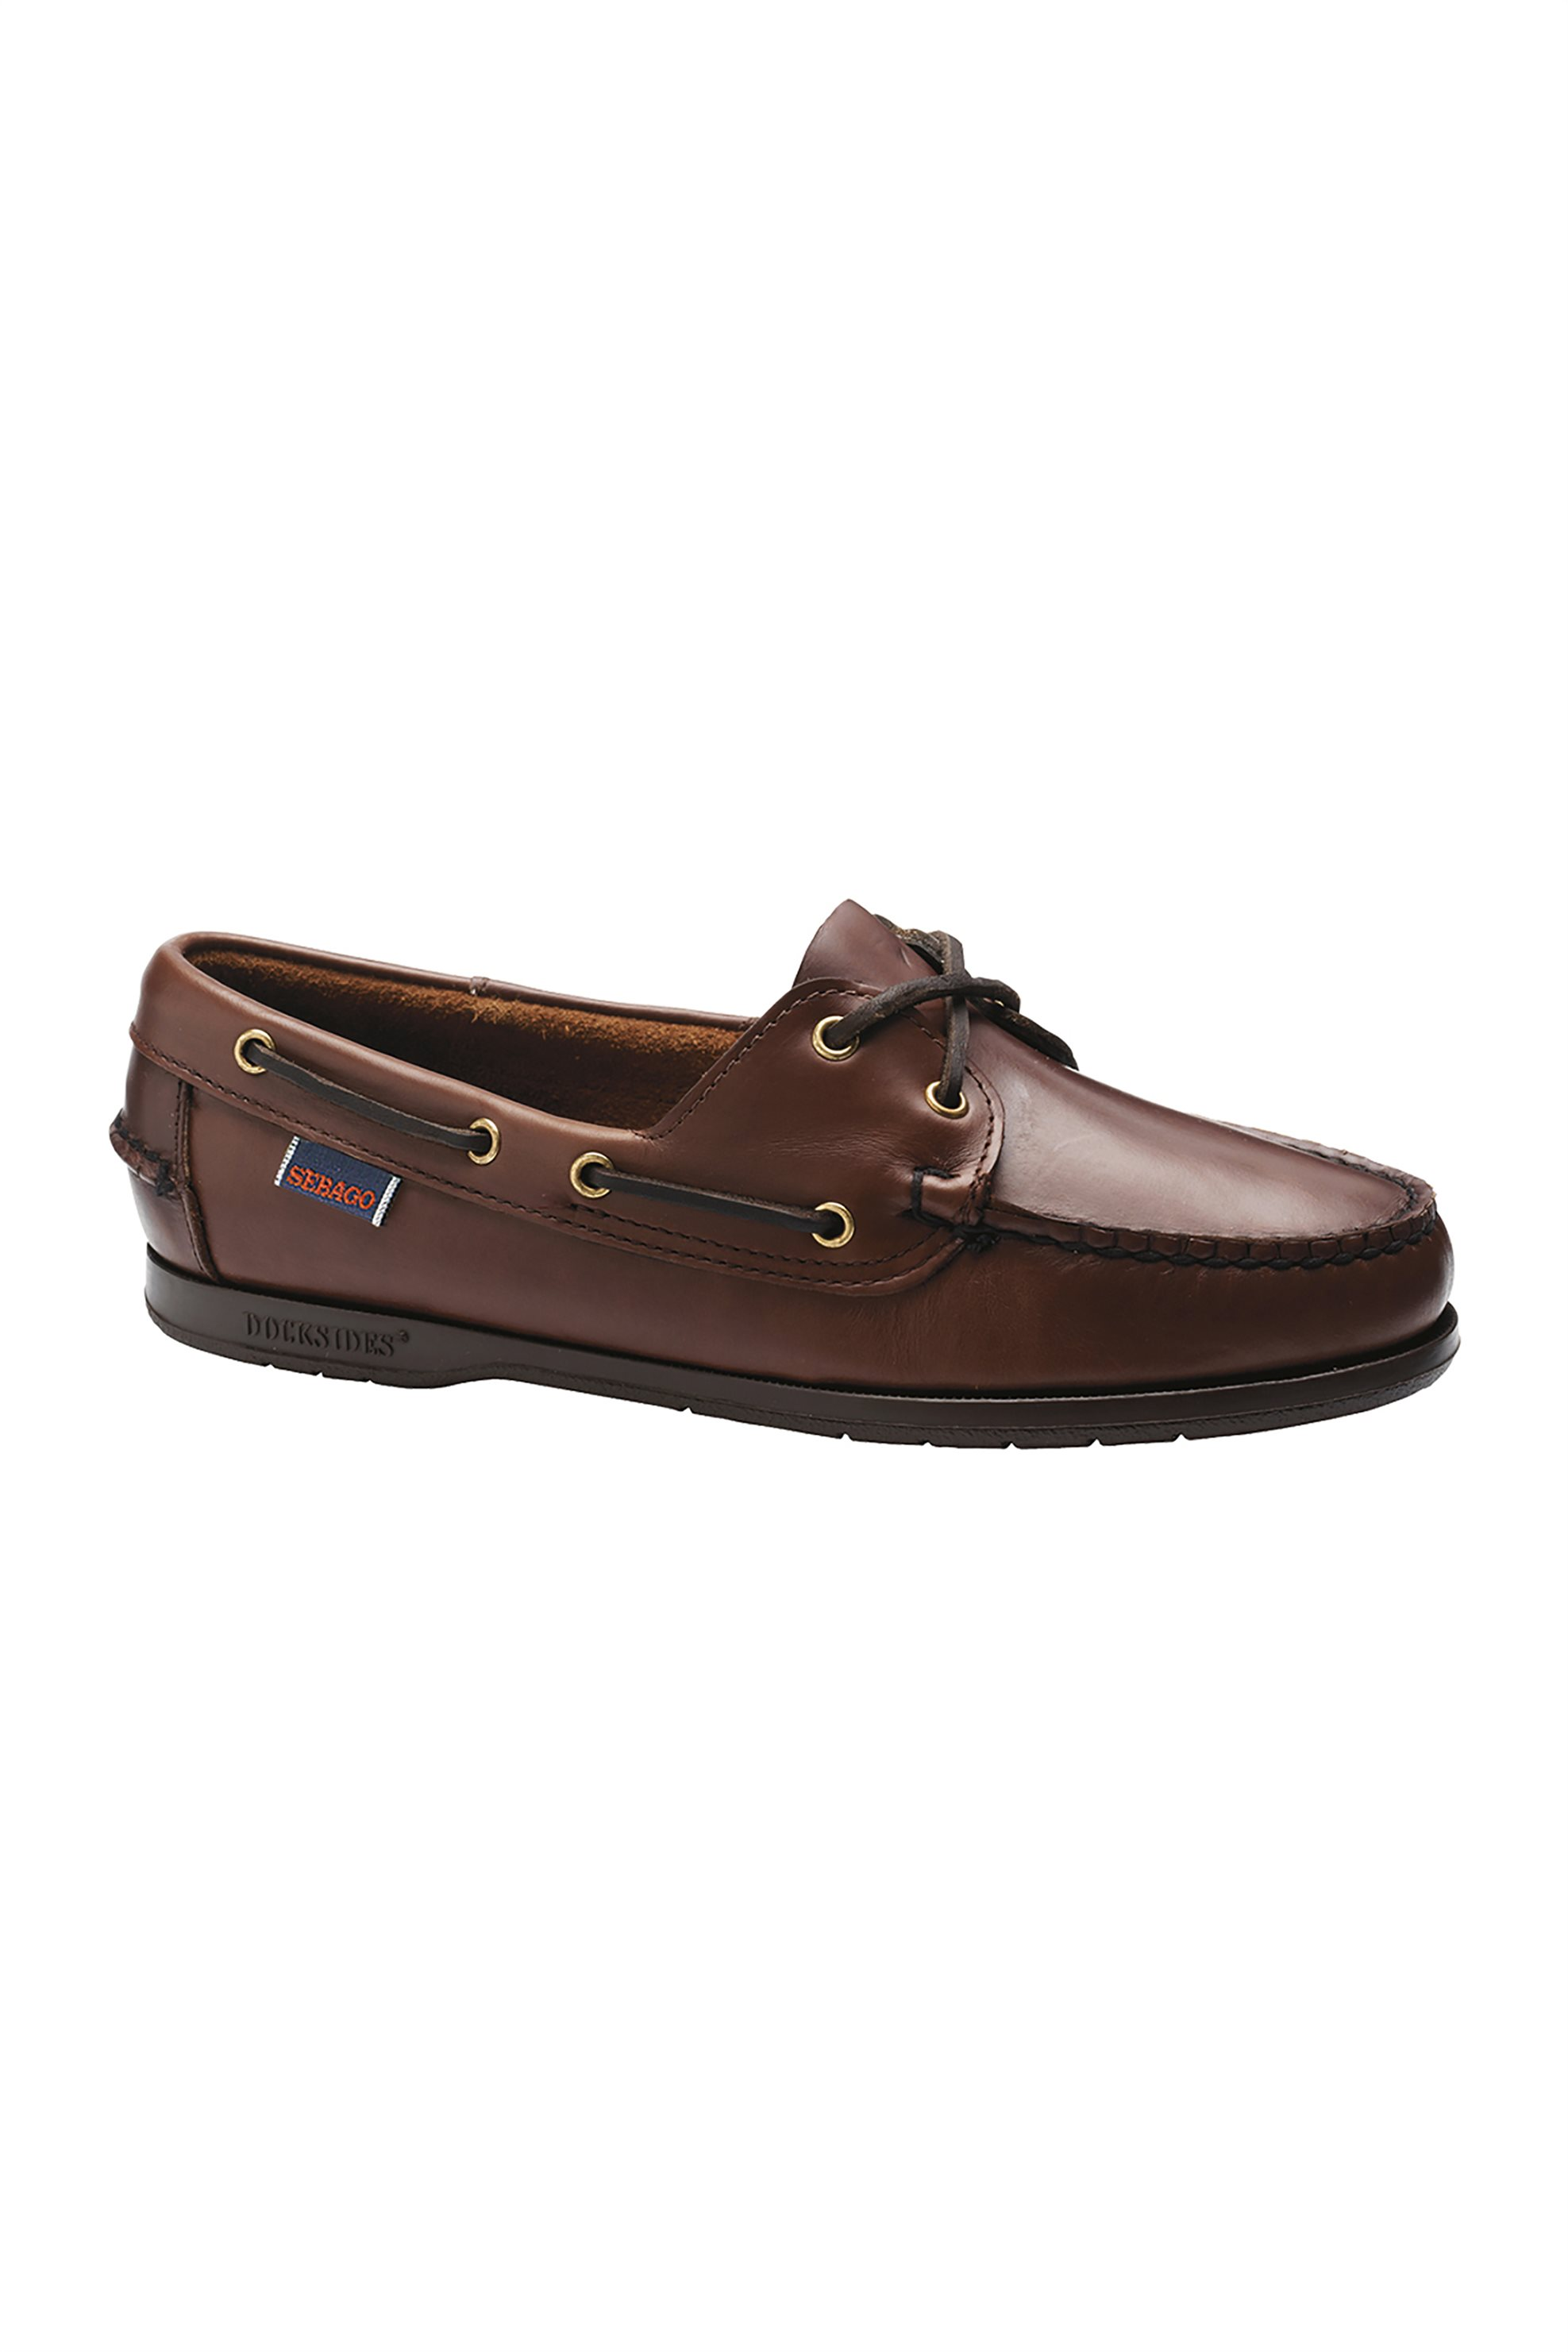 Sebago ανδρικά παπούτσια boats Victory Brown - B52043 - Καφέ boats